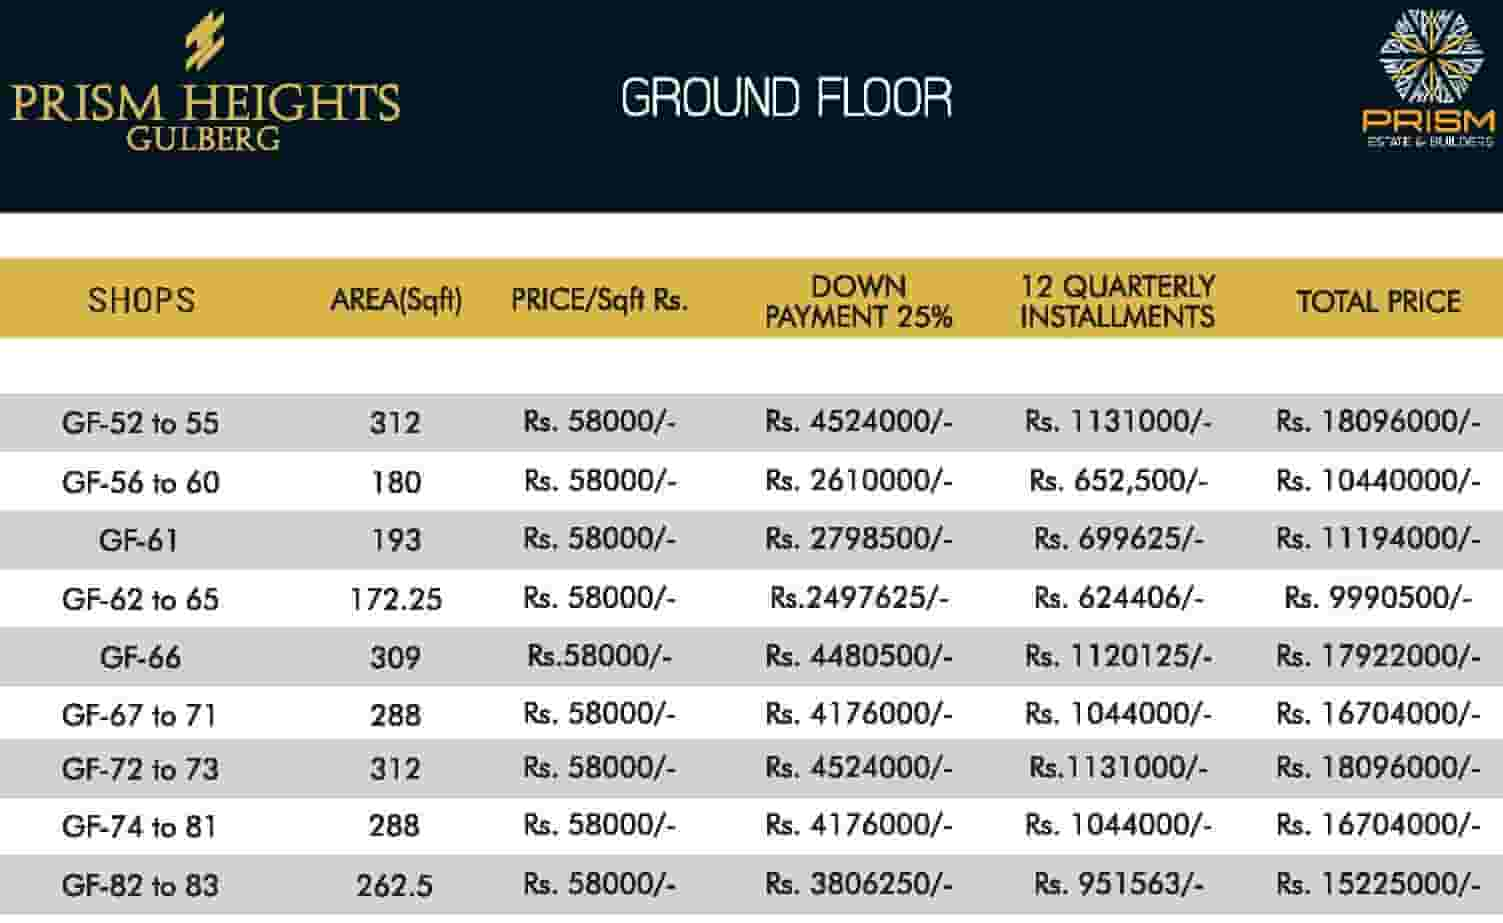 Prism Heights Ground Floor Payment Plan 2